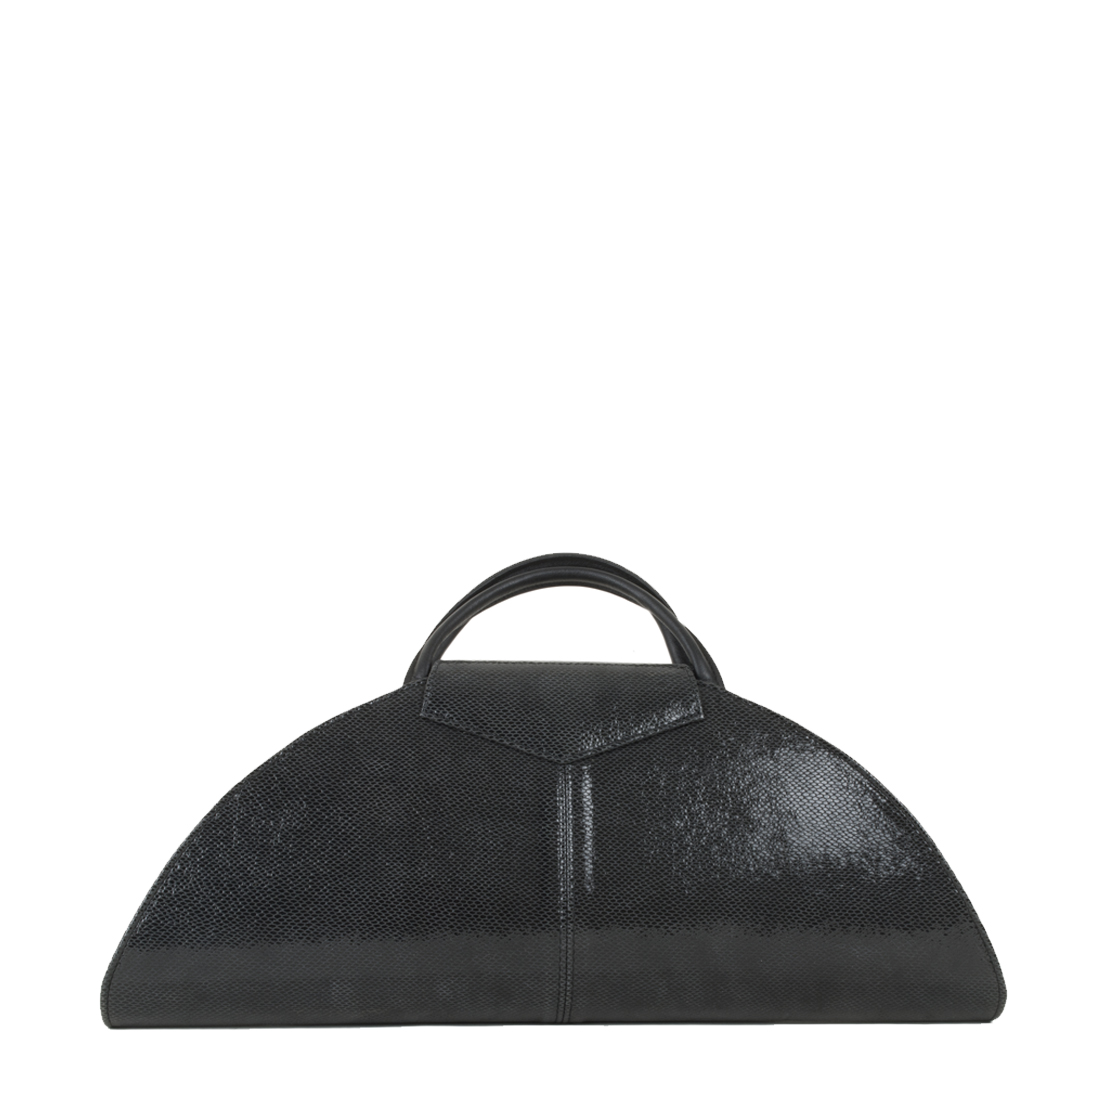 V Clutch Black Print Leather Handbag